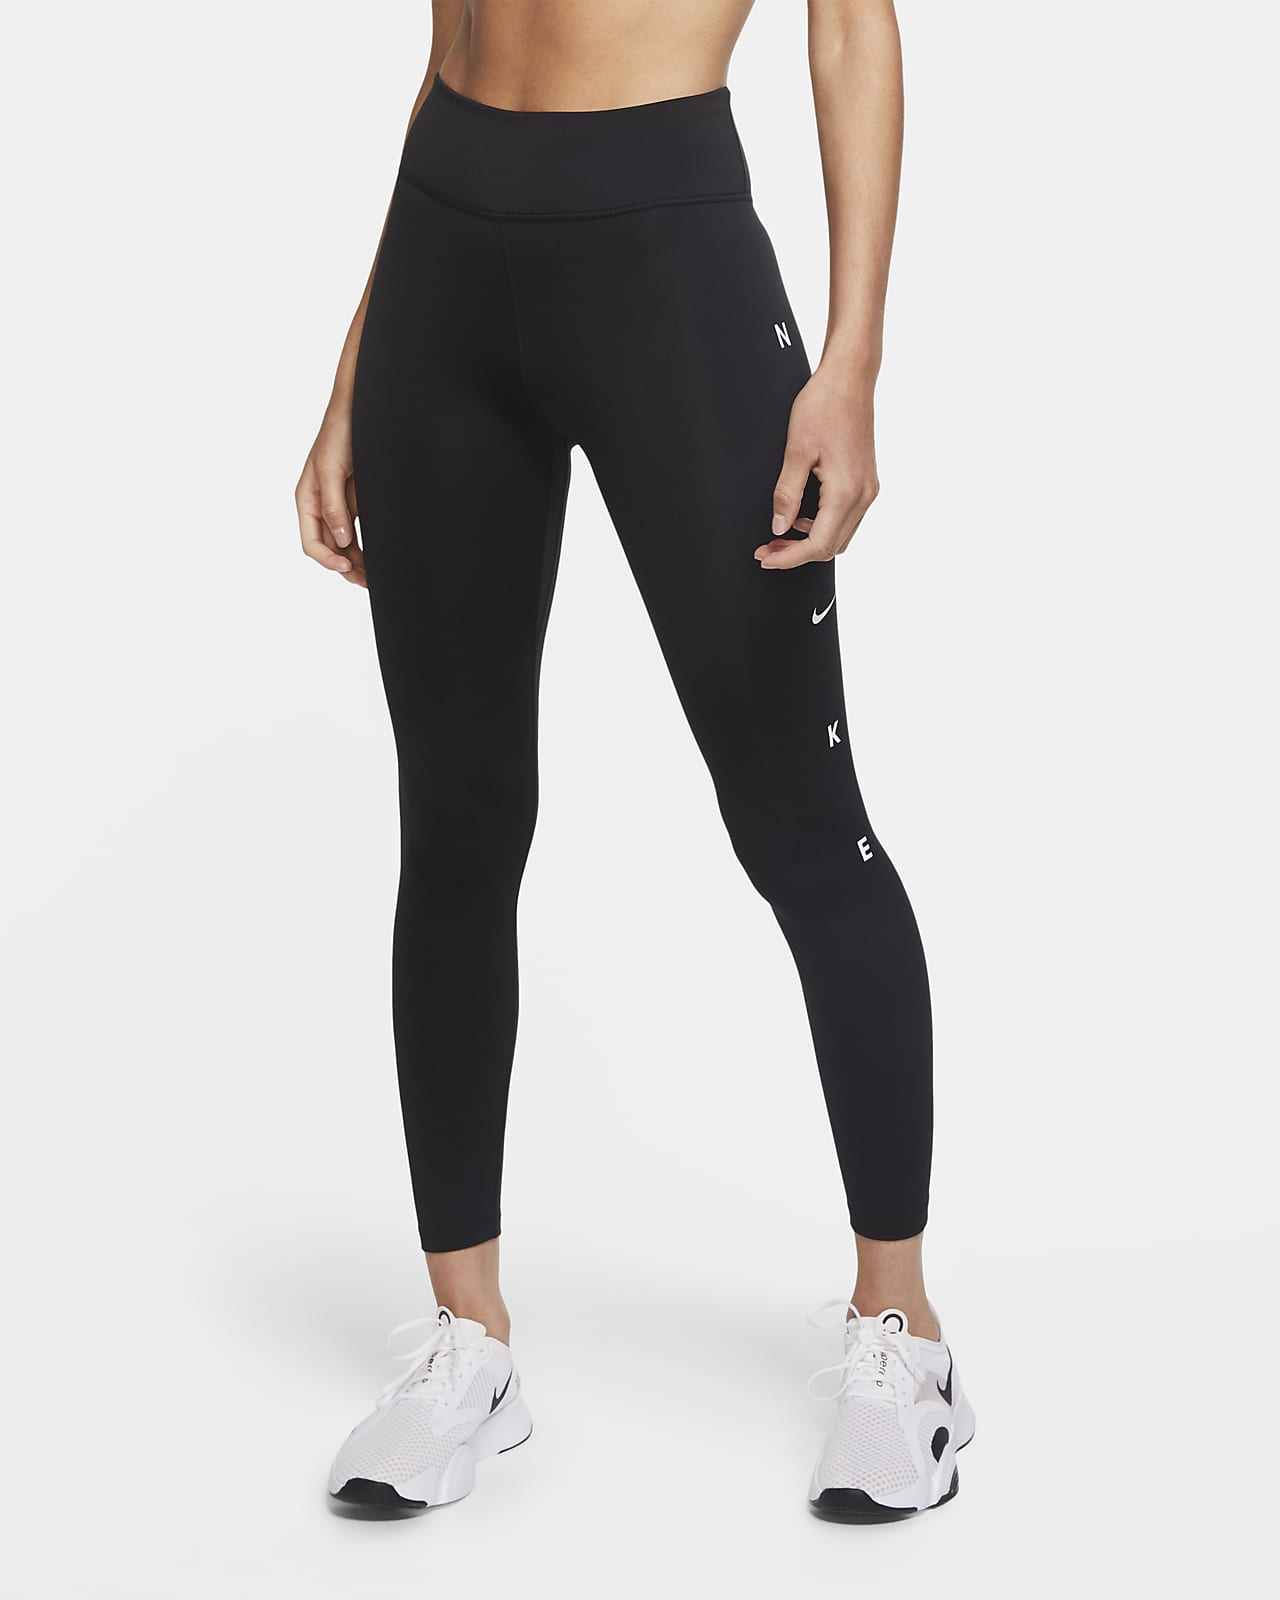 Nike One Women's 7/8 Graphic Leggings